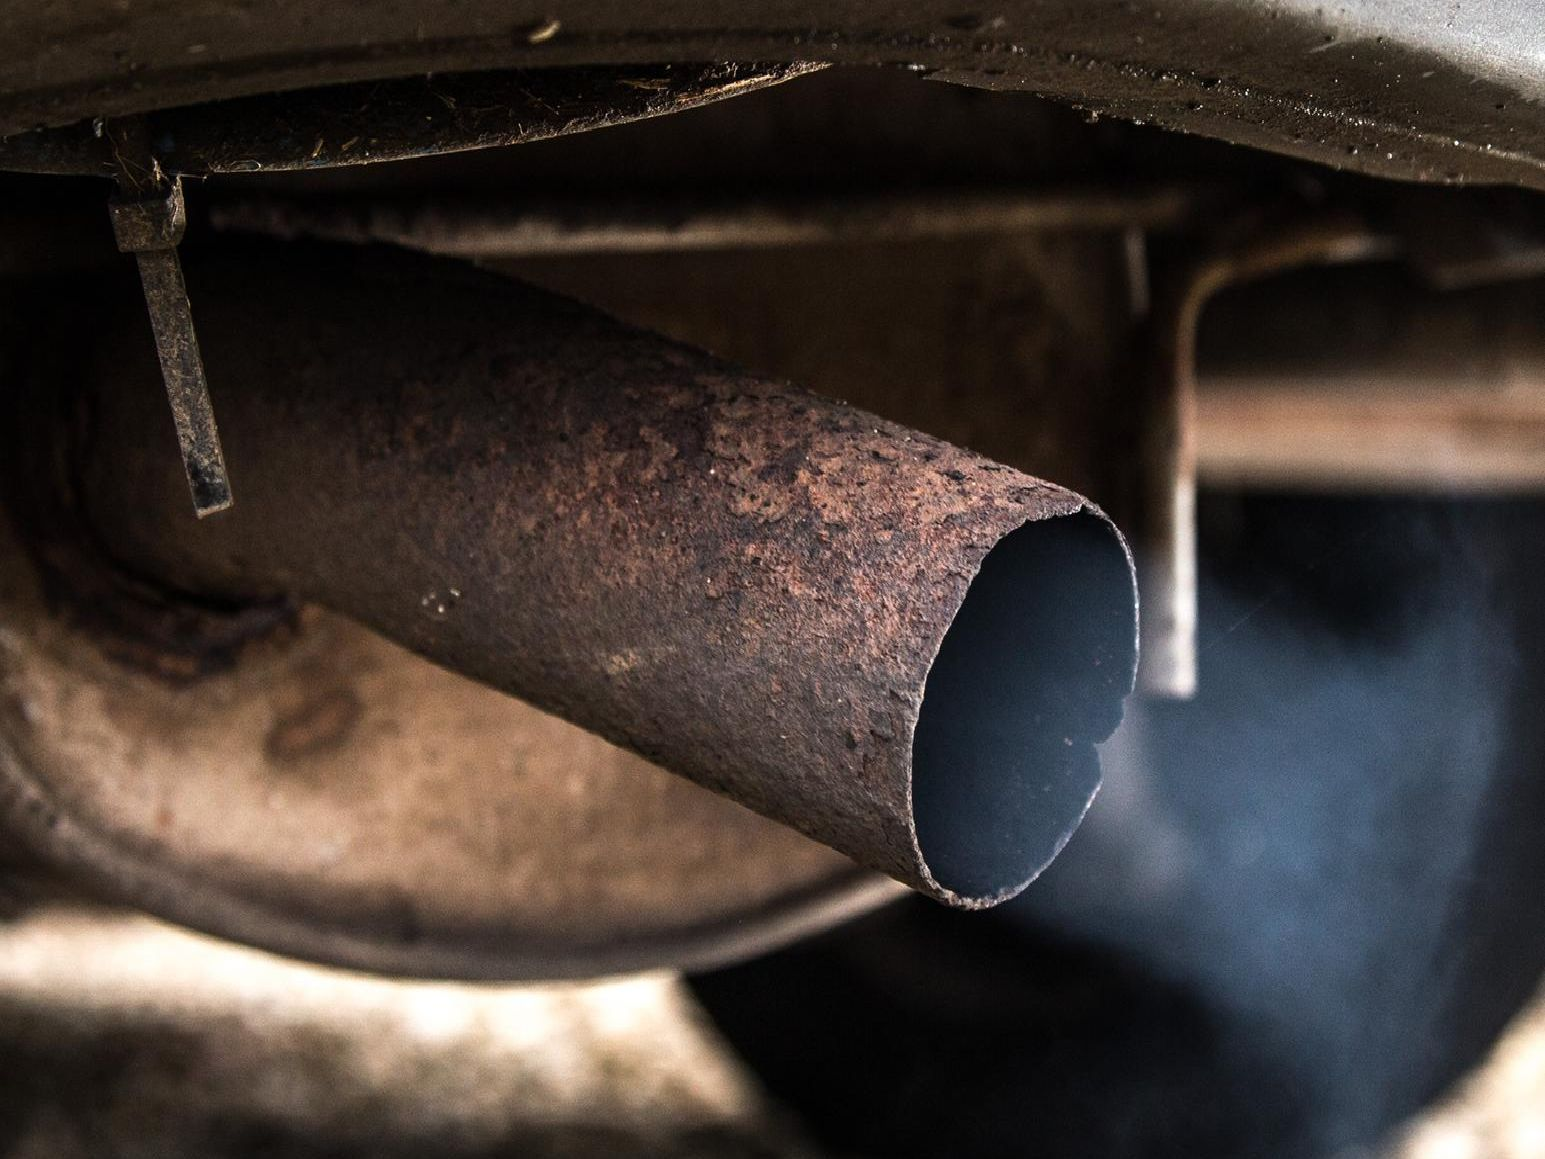 This is how to lower your driving emissions